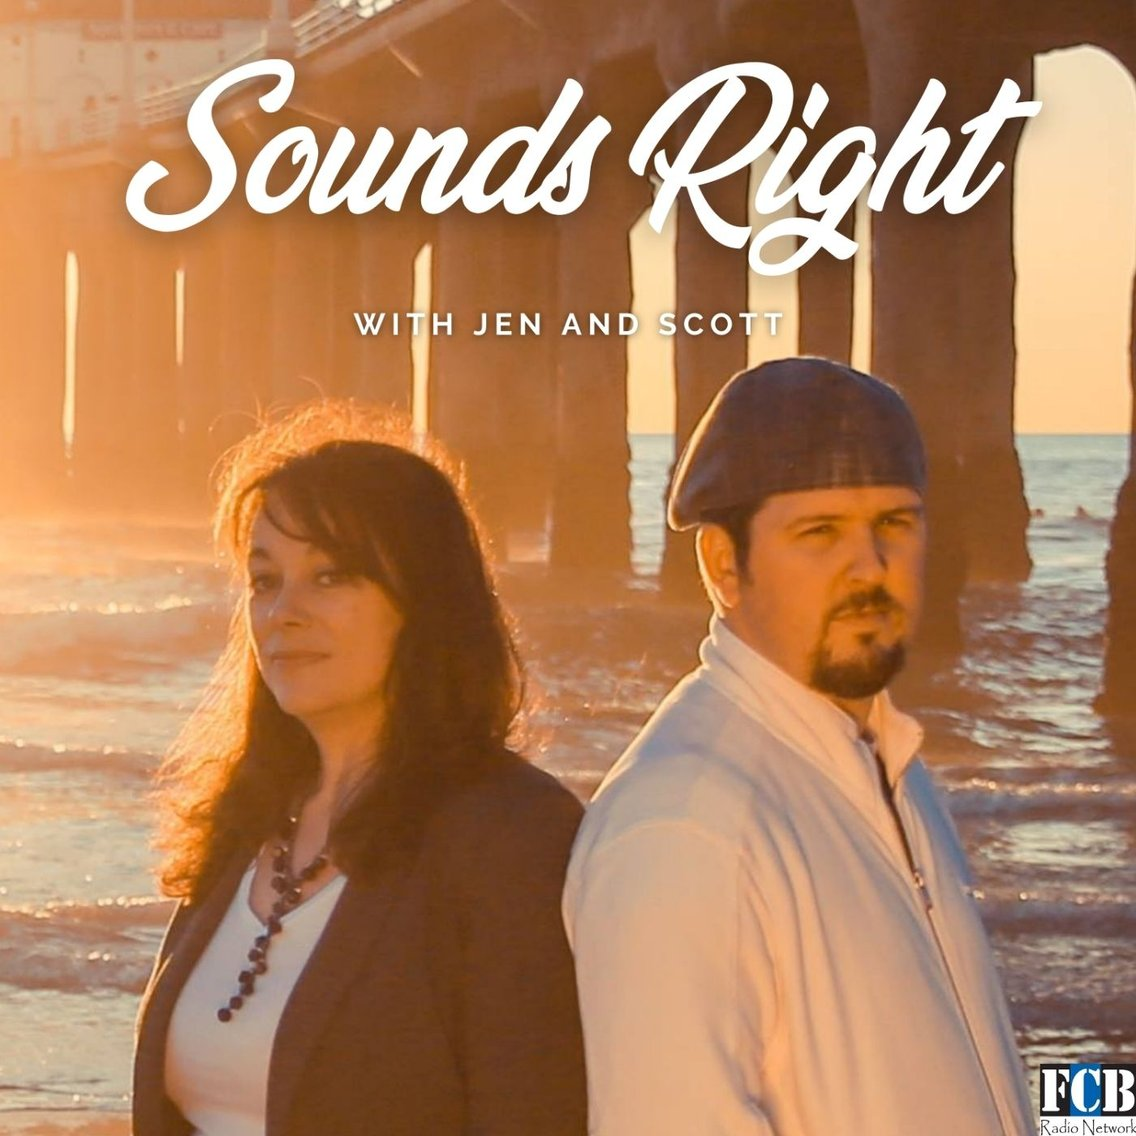 Sounds Right with Jen and Scott - Cover Image